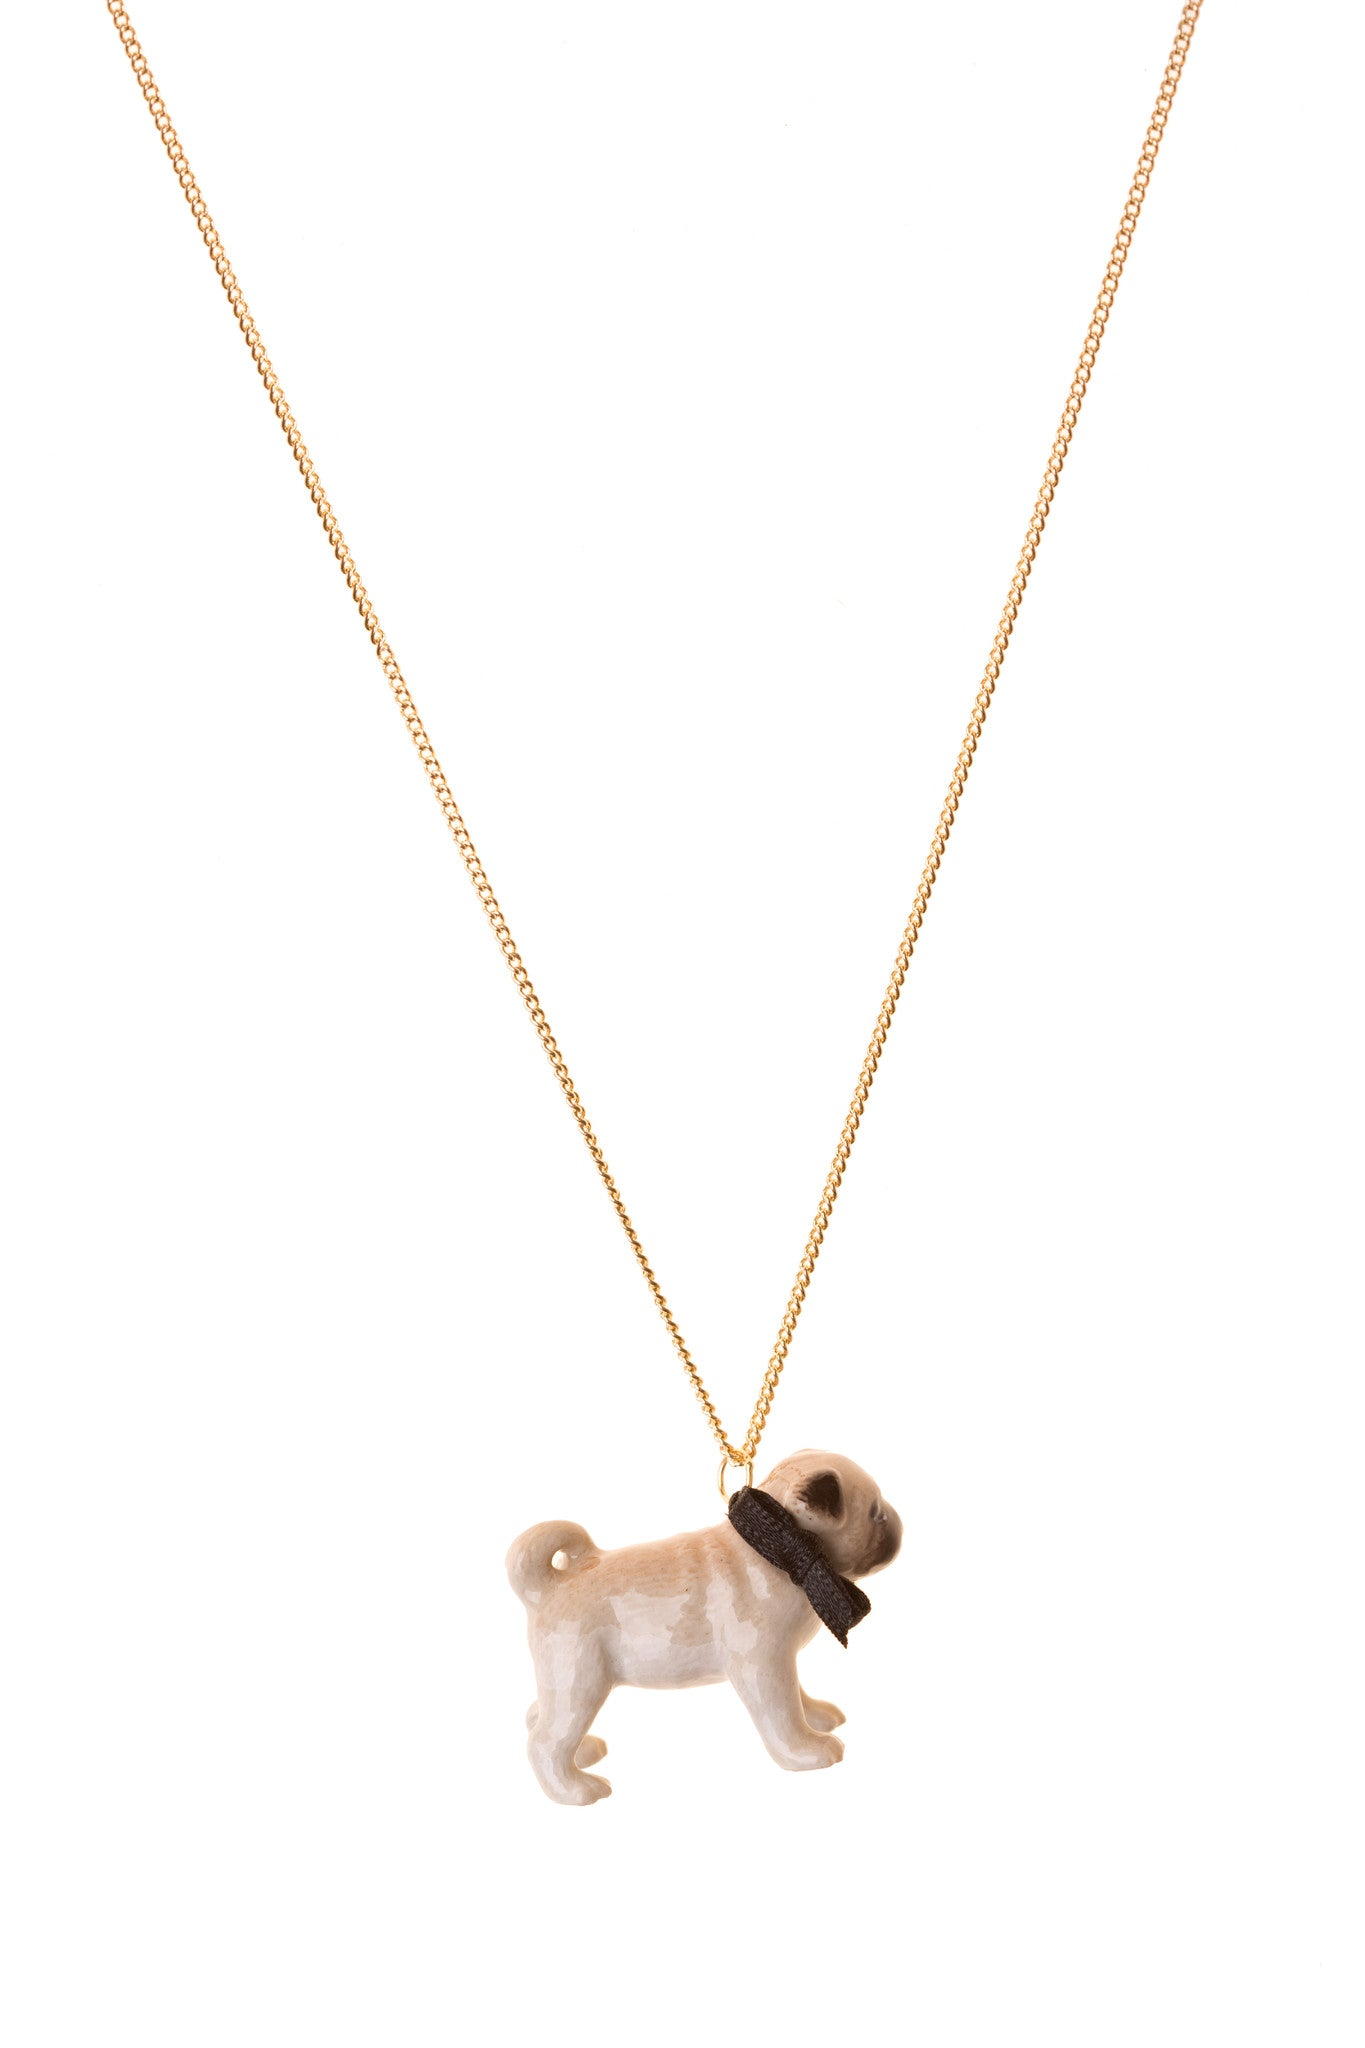 Pug Necklace With Black Bow